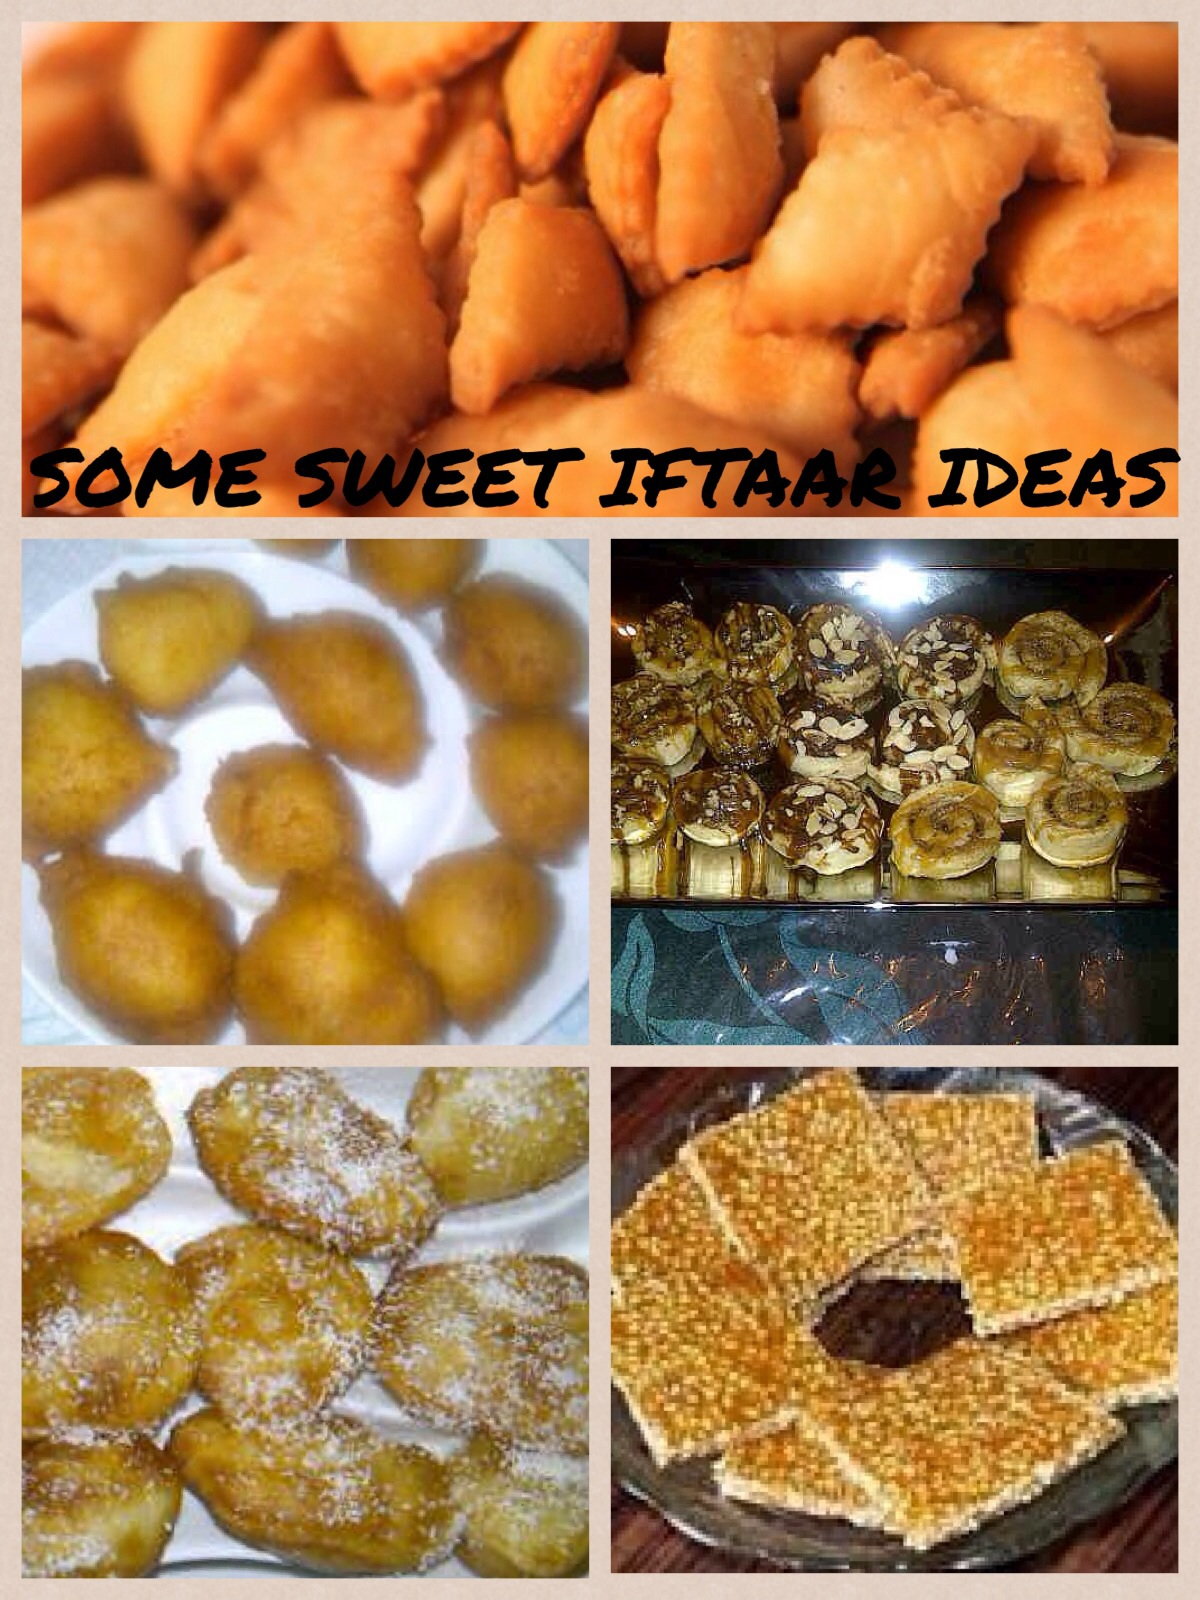 IFTAR IDEAS FOR THE SWEET MOUTH